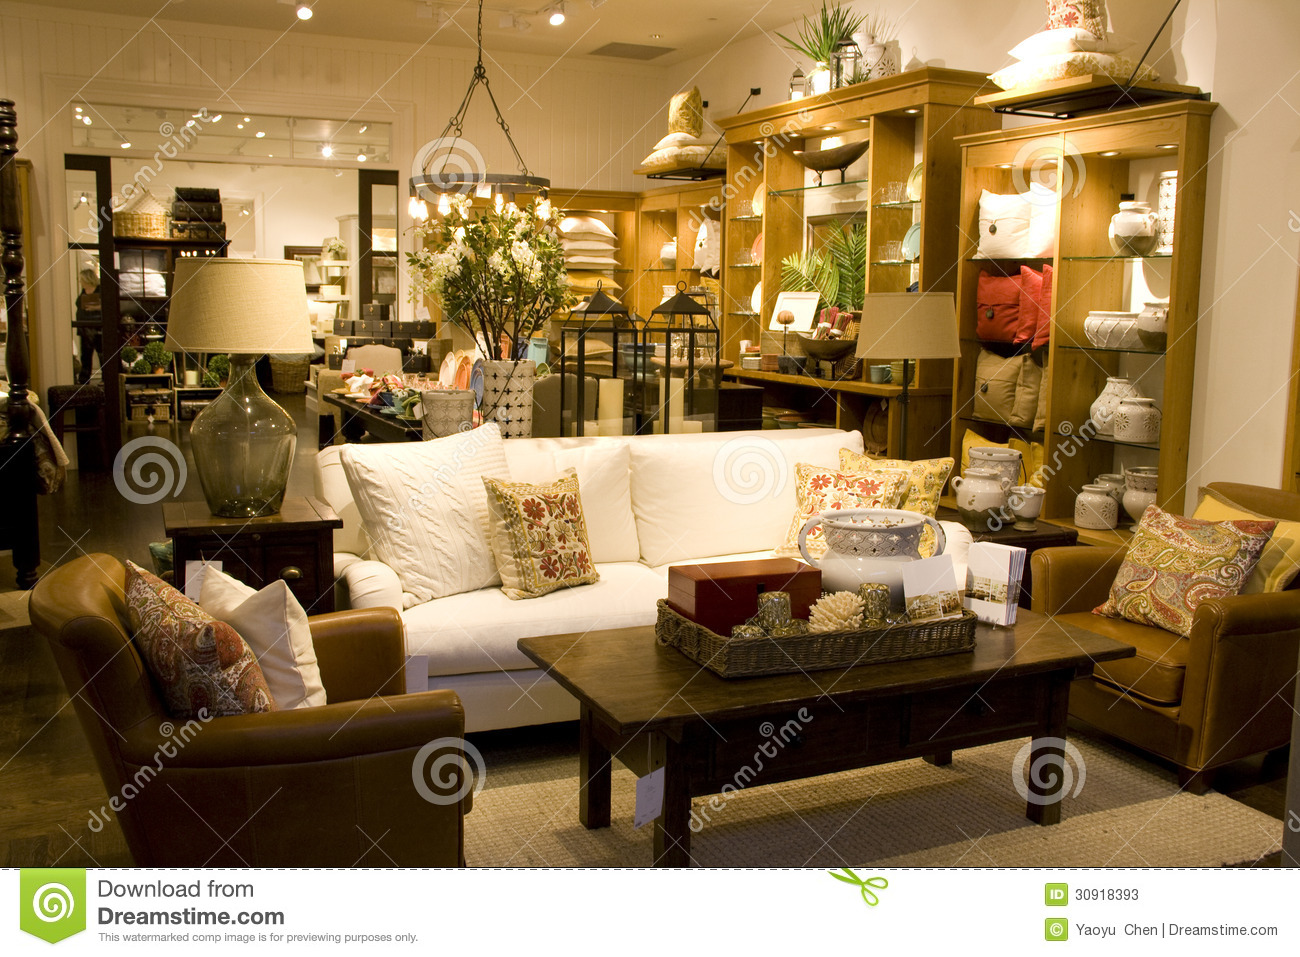 Furniture And Home Decor Store Stock Image Image 30918393 Home Decorators Catalog Best Ideas of Home Decor and Design [homedecoratorscatalog.us]